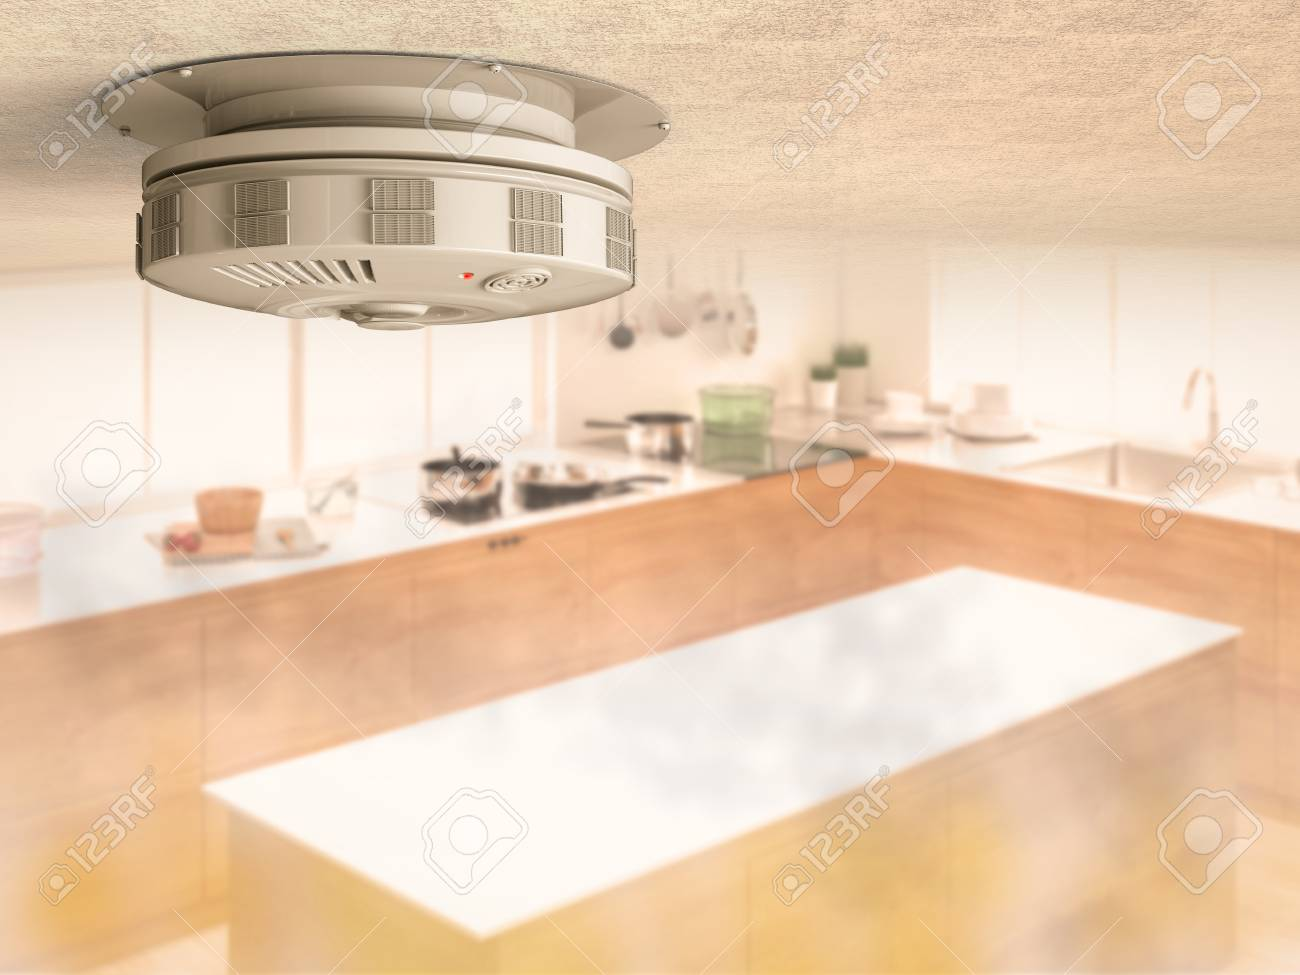 kitchen smoke detector lowes outdoor kitchens 3d rendering on ceiling with in stock photo 64609786